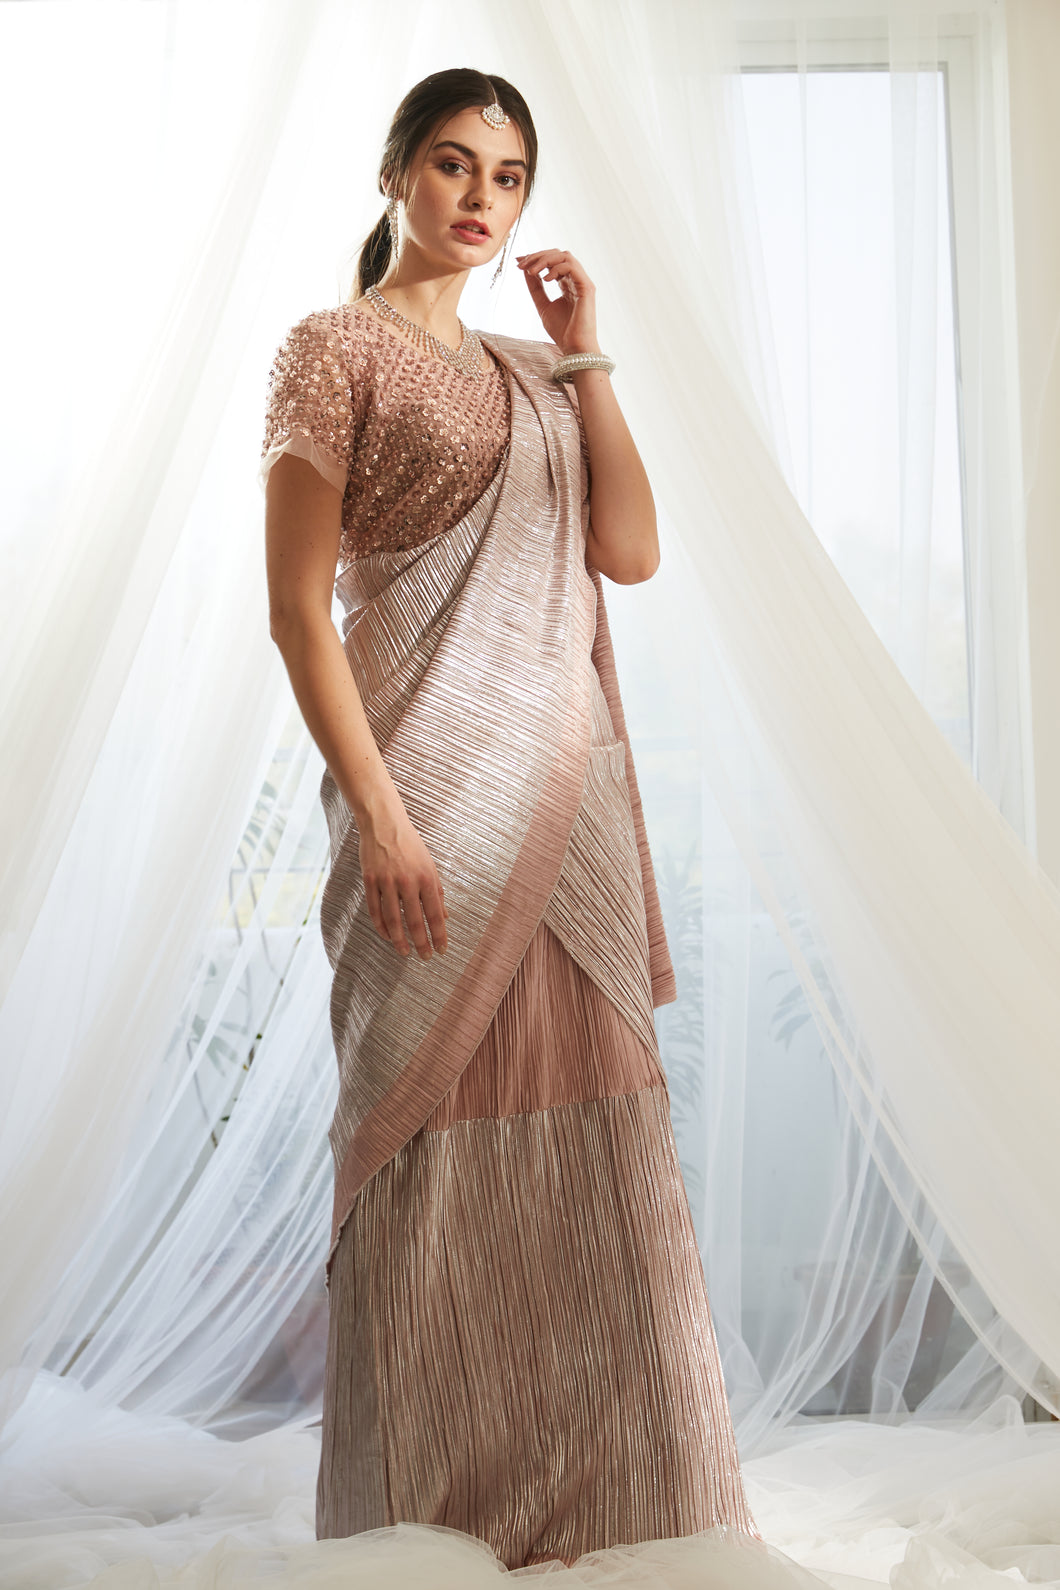 Scintillating Sewed Pleated Saree With Embellished Sequence Blouse - Metallic Blush Pink